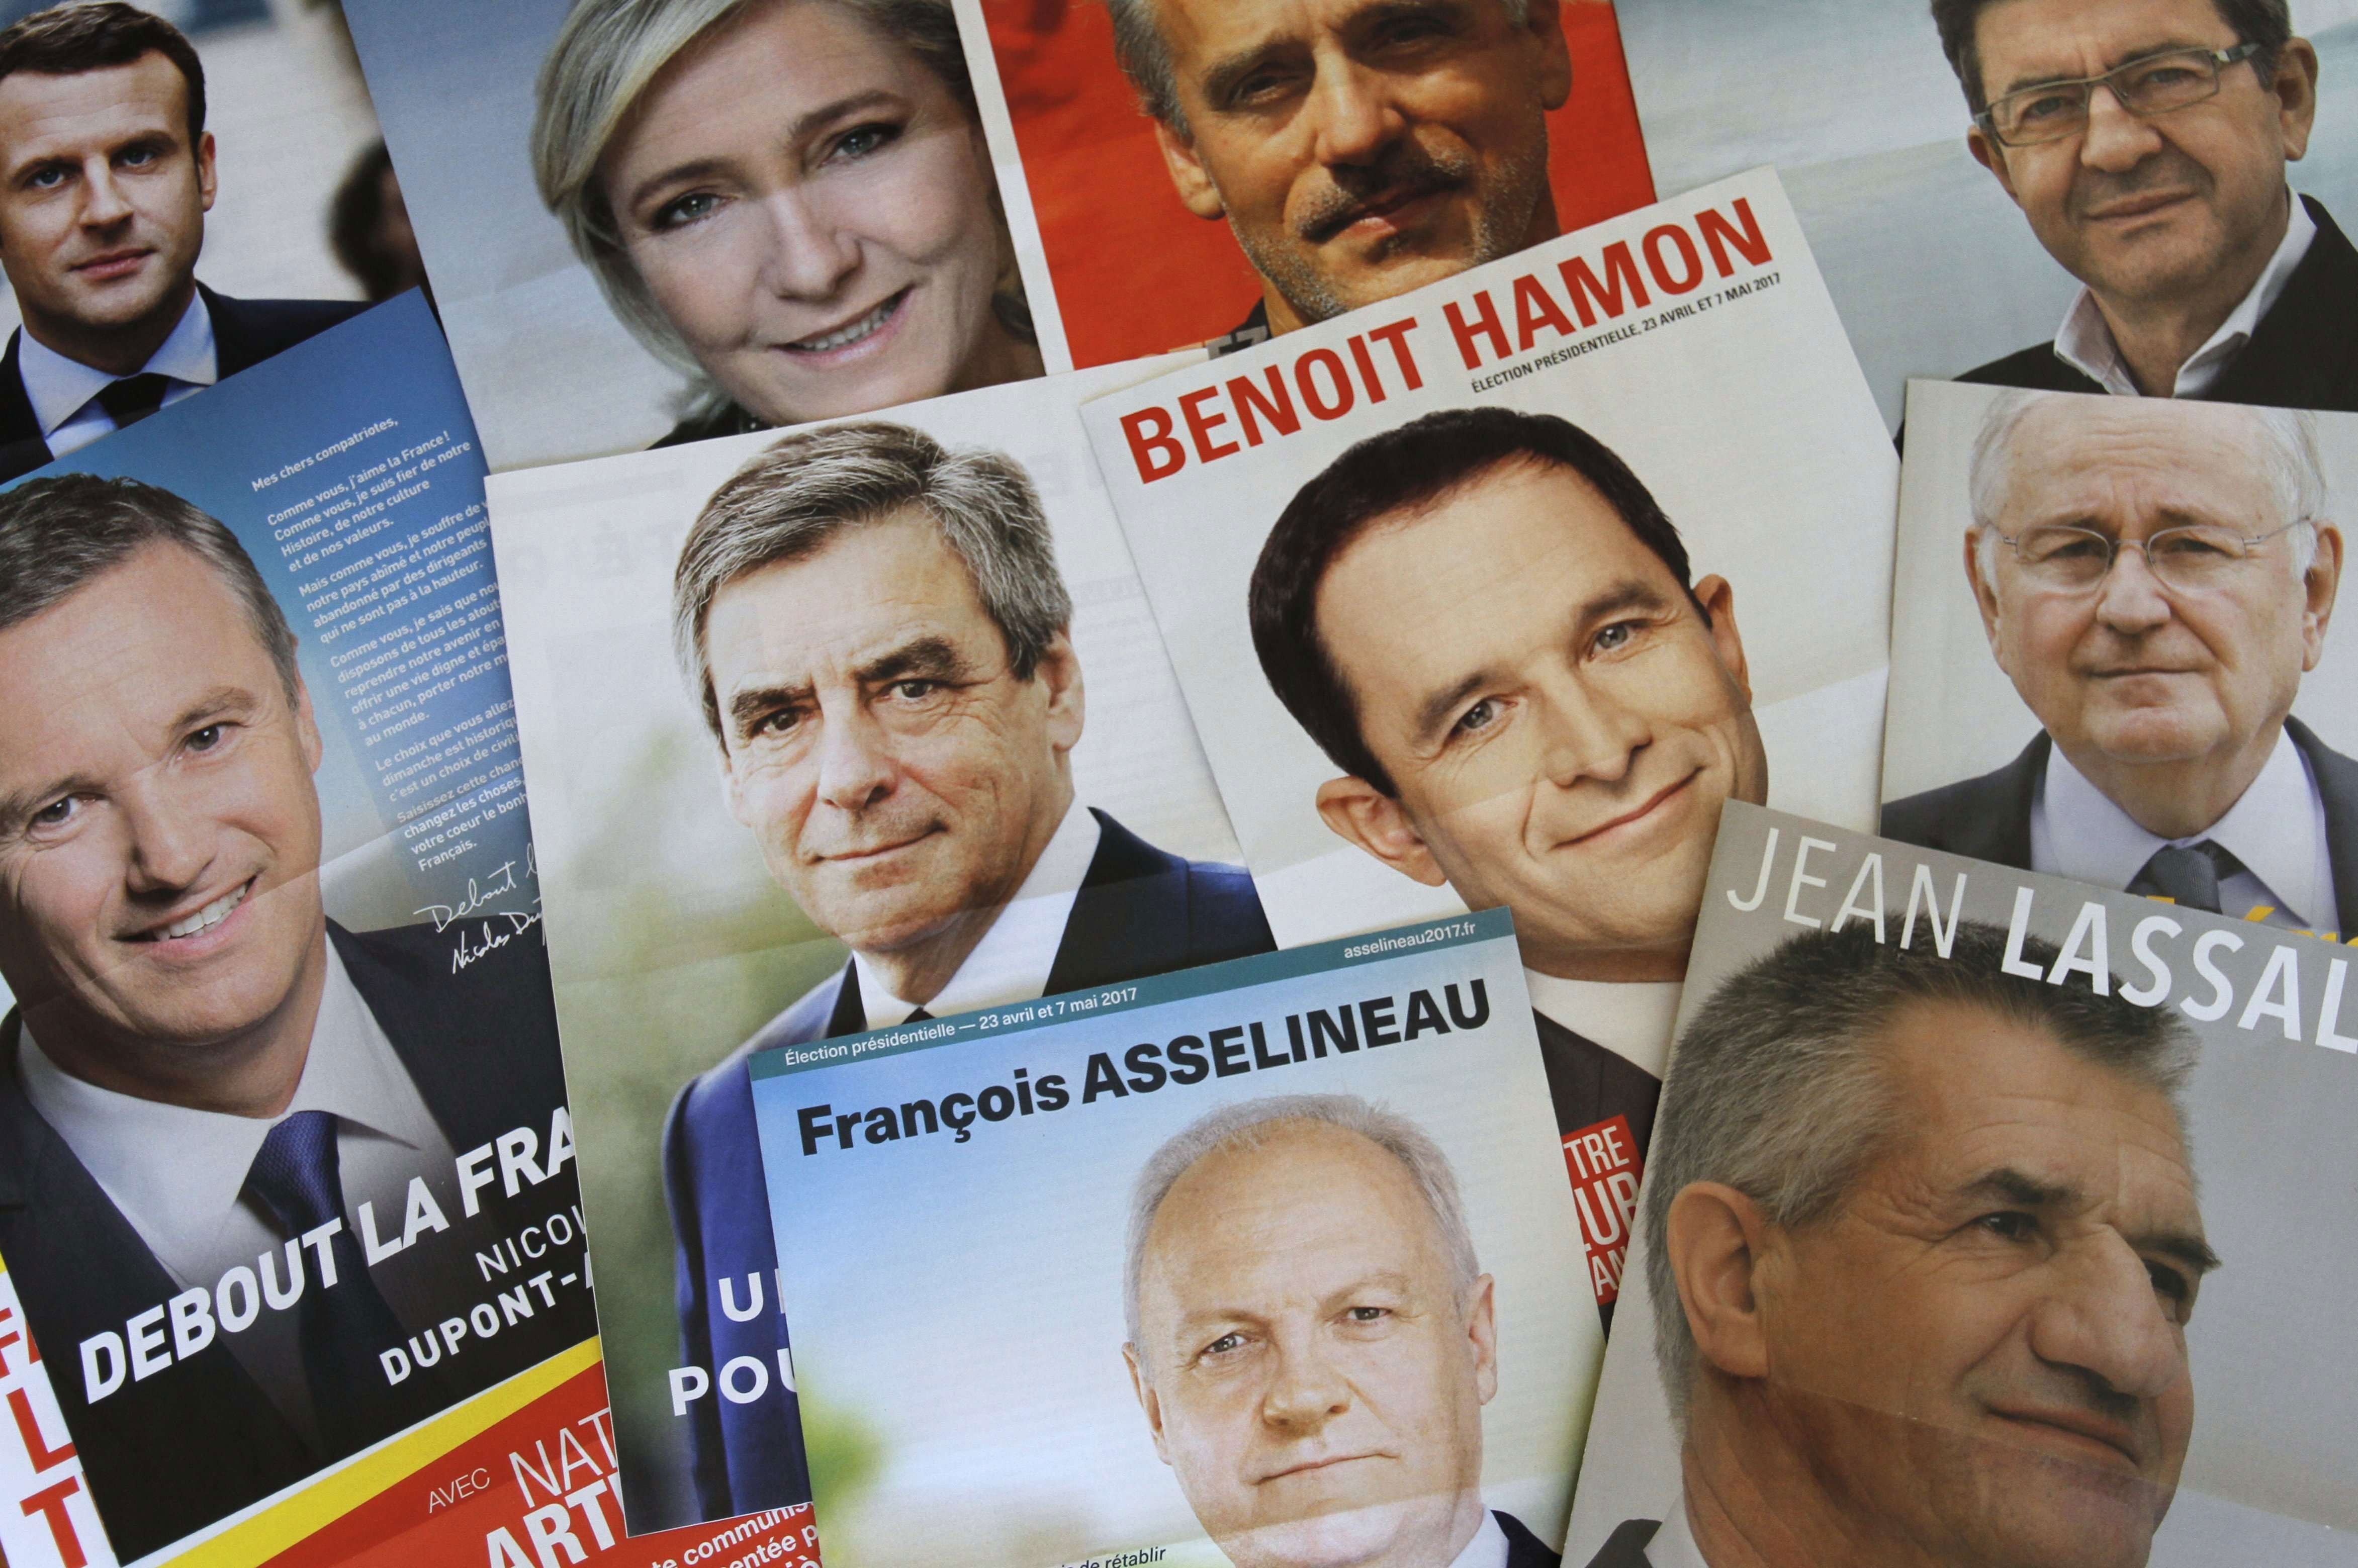 Leaflets of candidates for the French 2017 presidential election. (Photo: Xavier Vila/SIPA/Newscom)